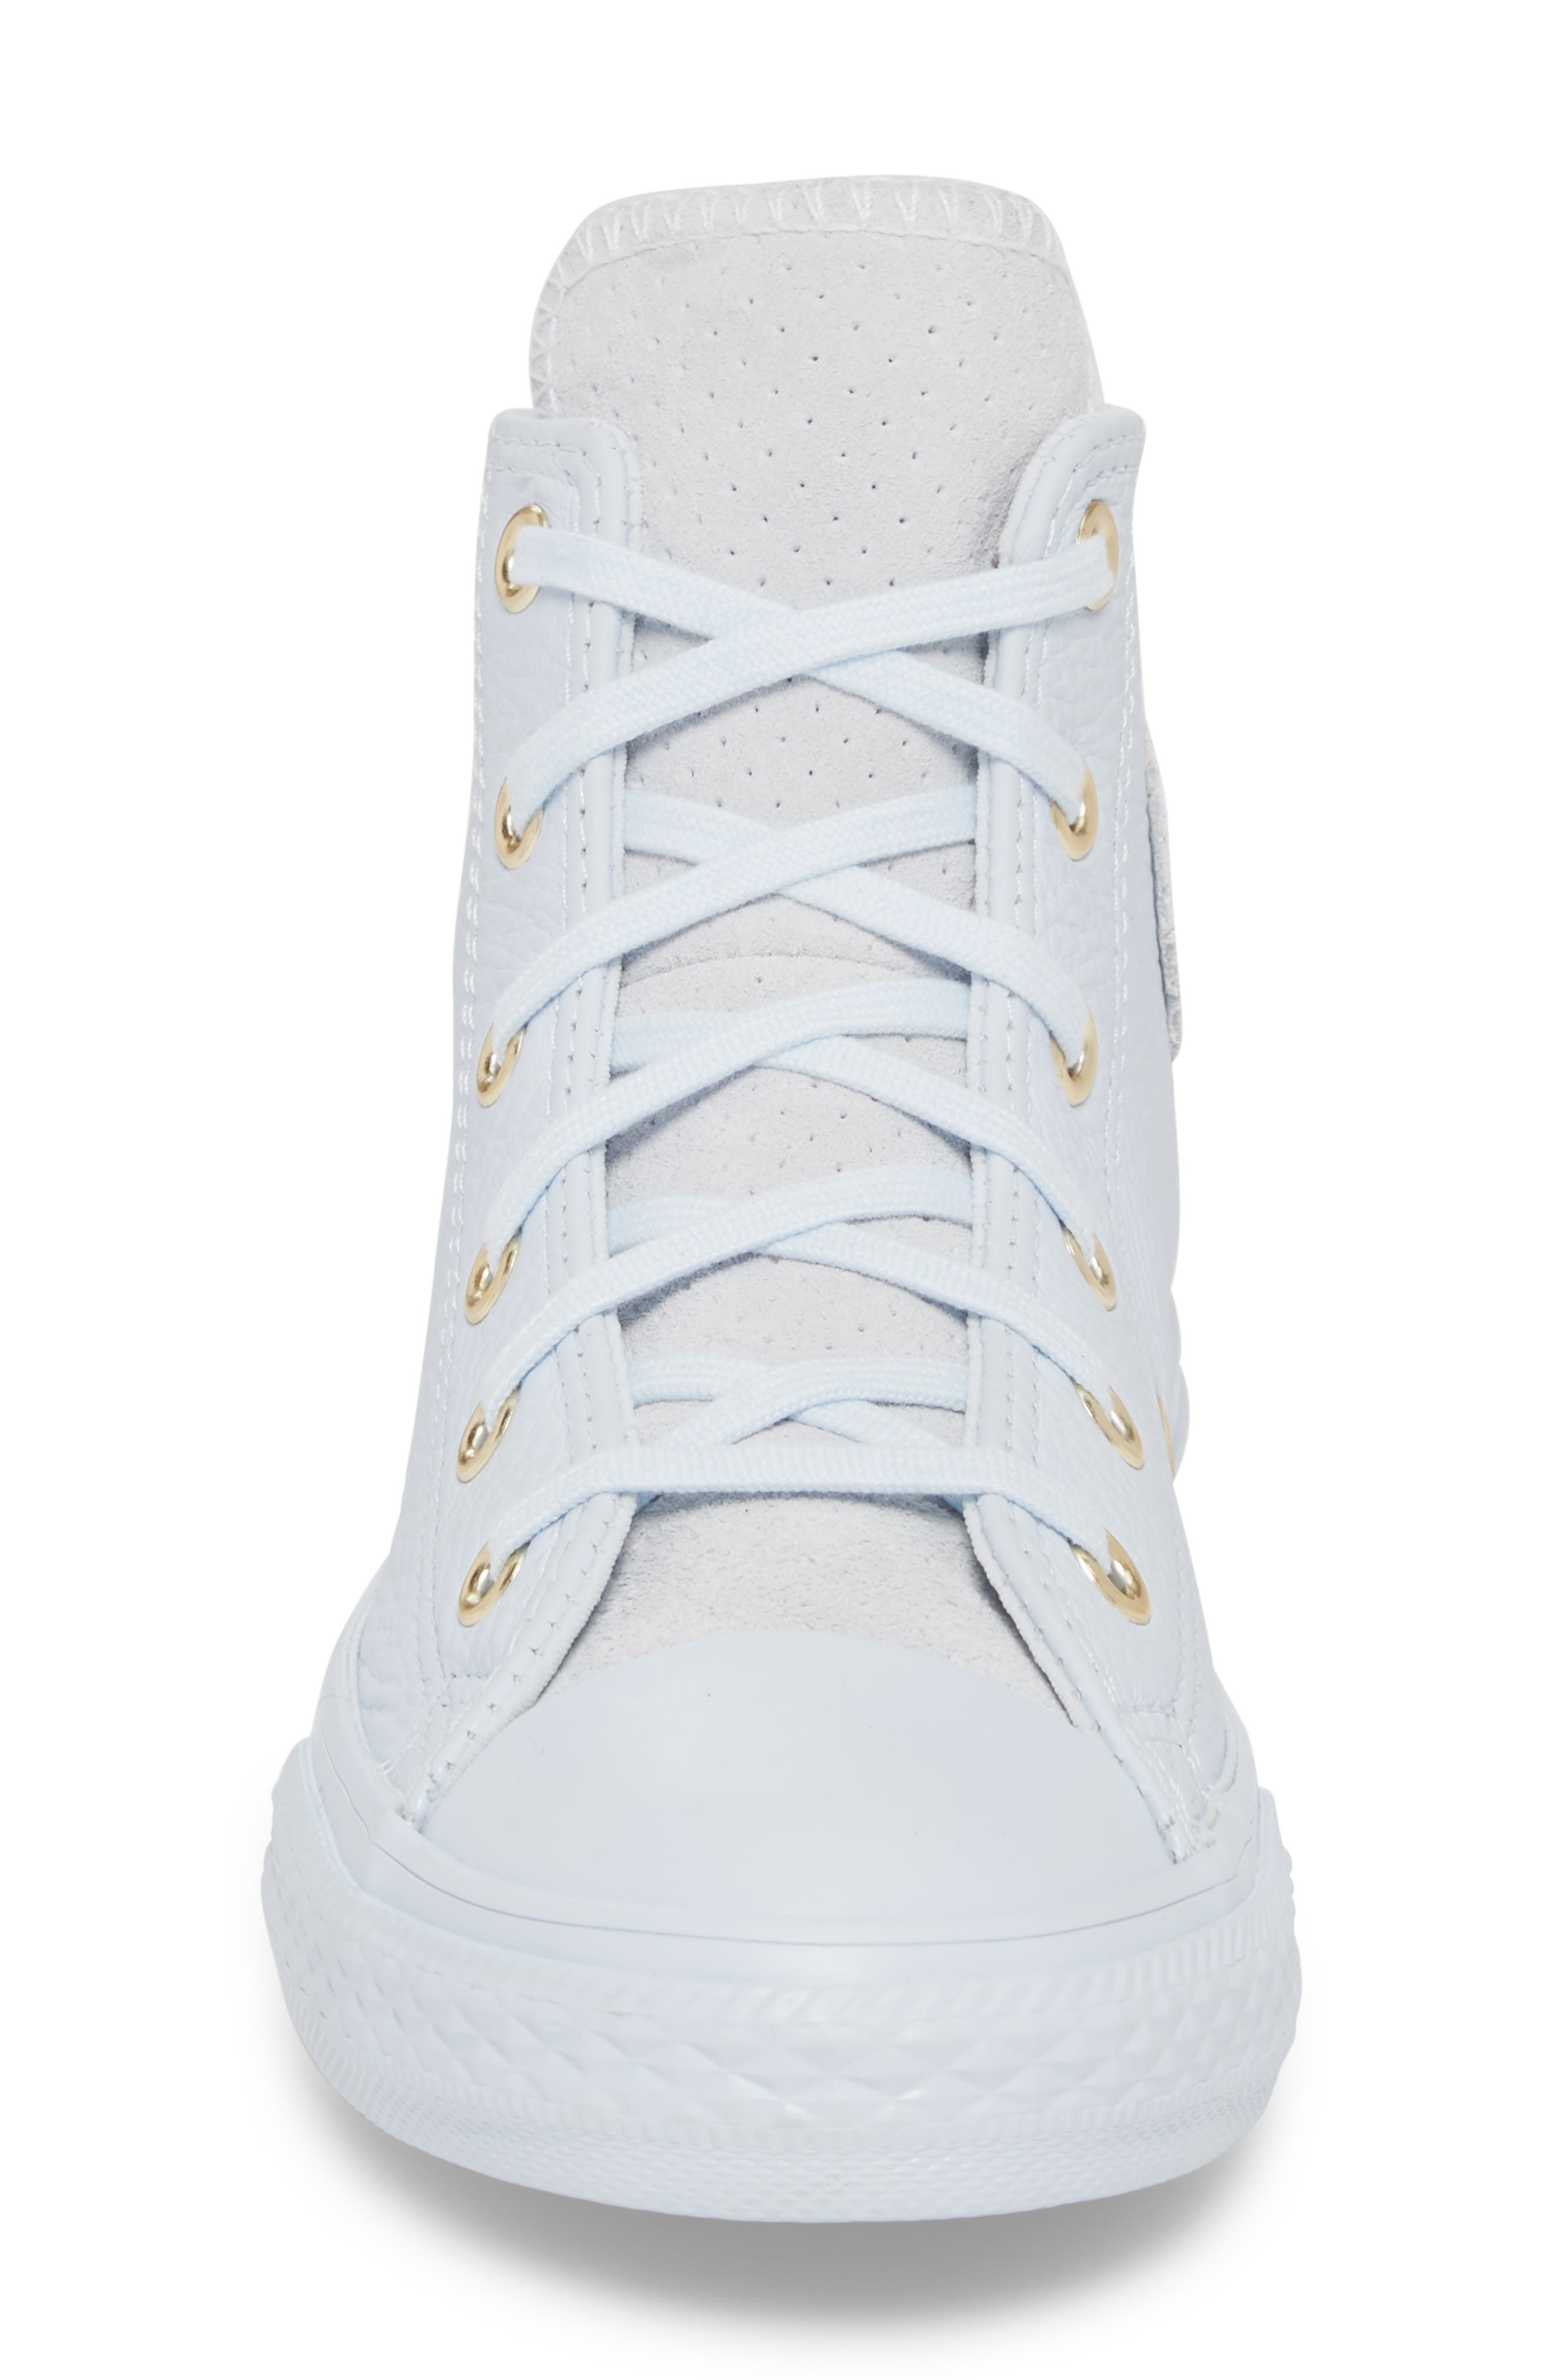 Chuck Taylor<sup>®</sup> All Star<sup>®</sup> Mono High Top Sneaker,                             Alternate thumbnail 4, color,                             Blue Tint